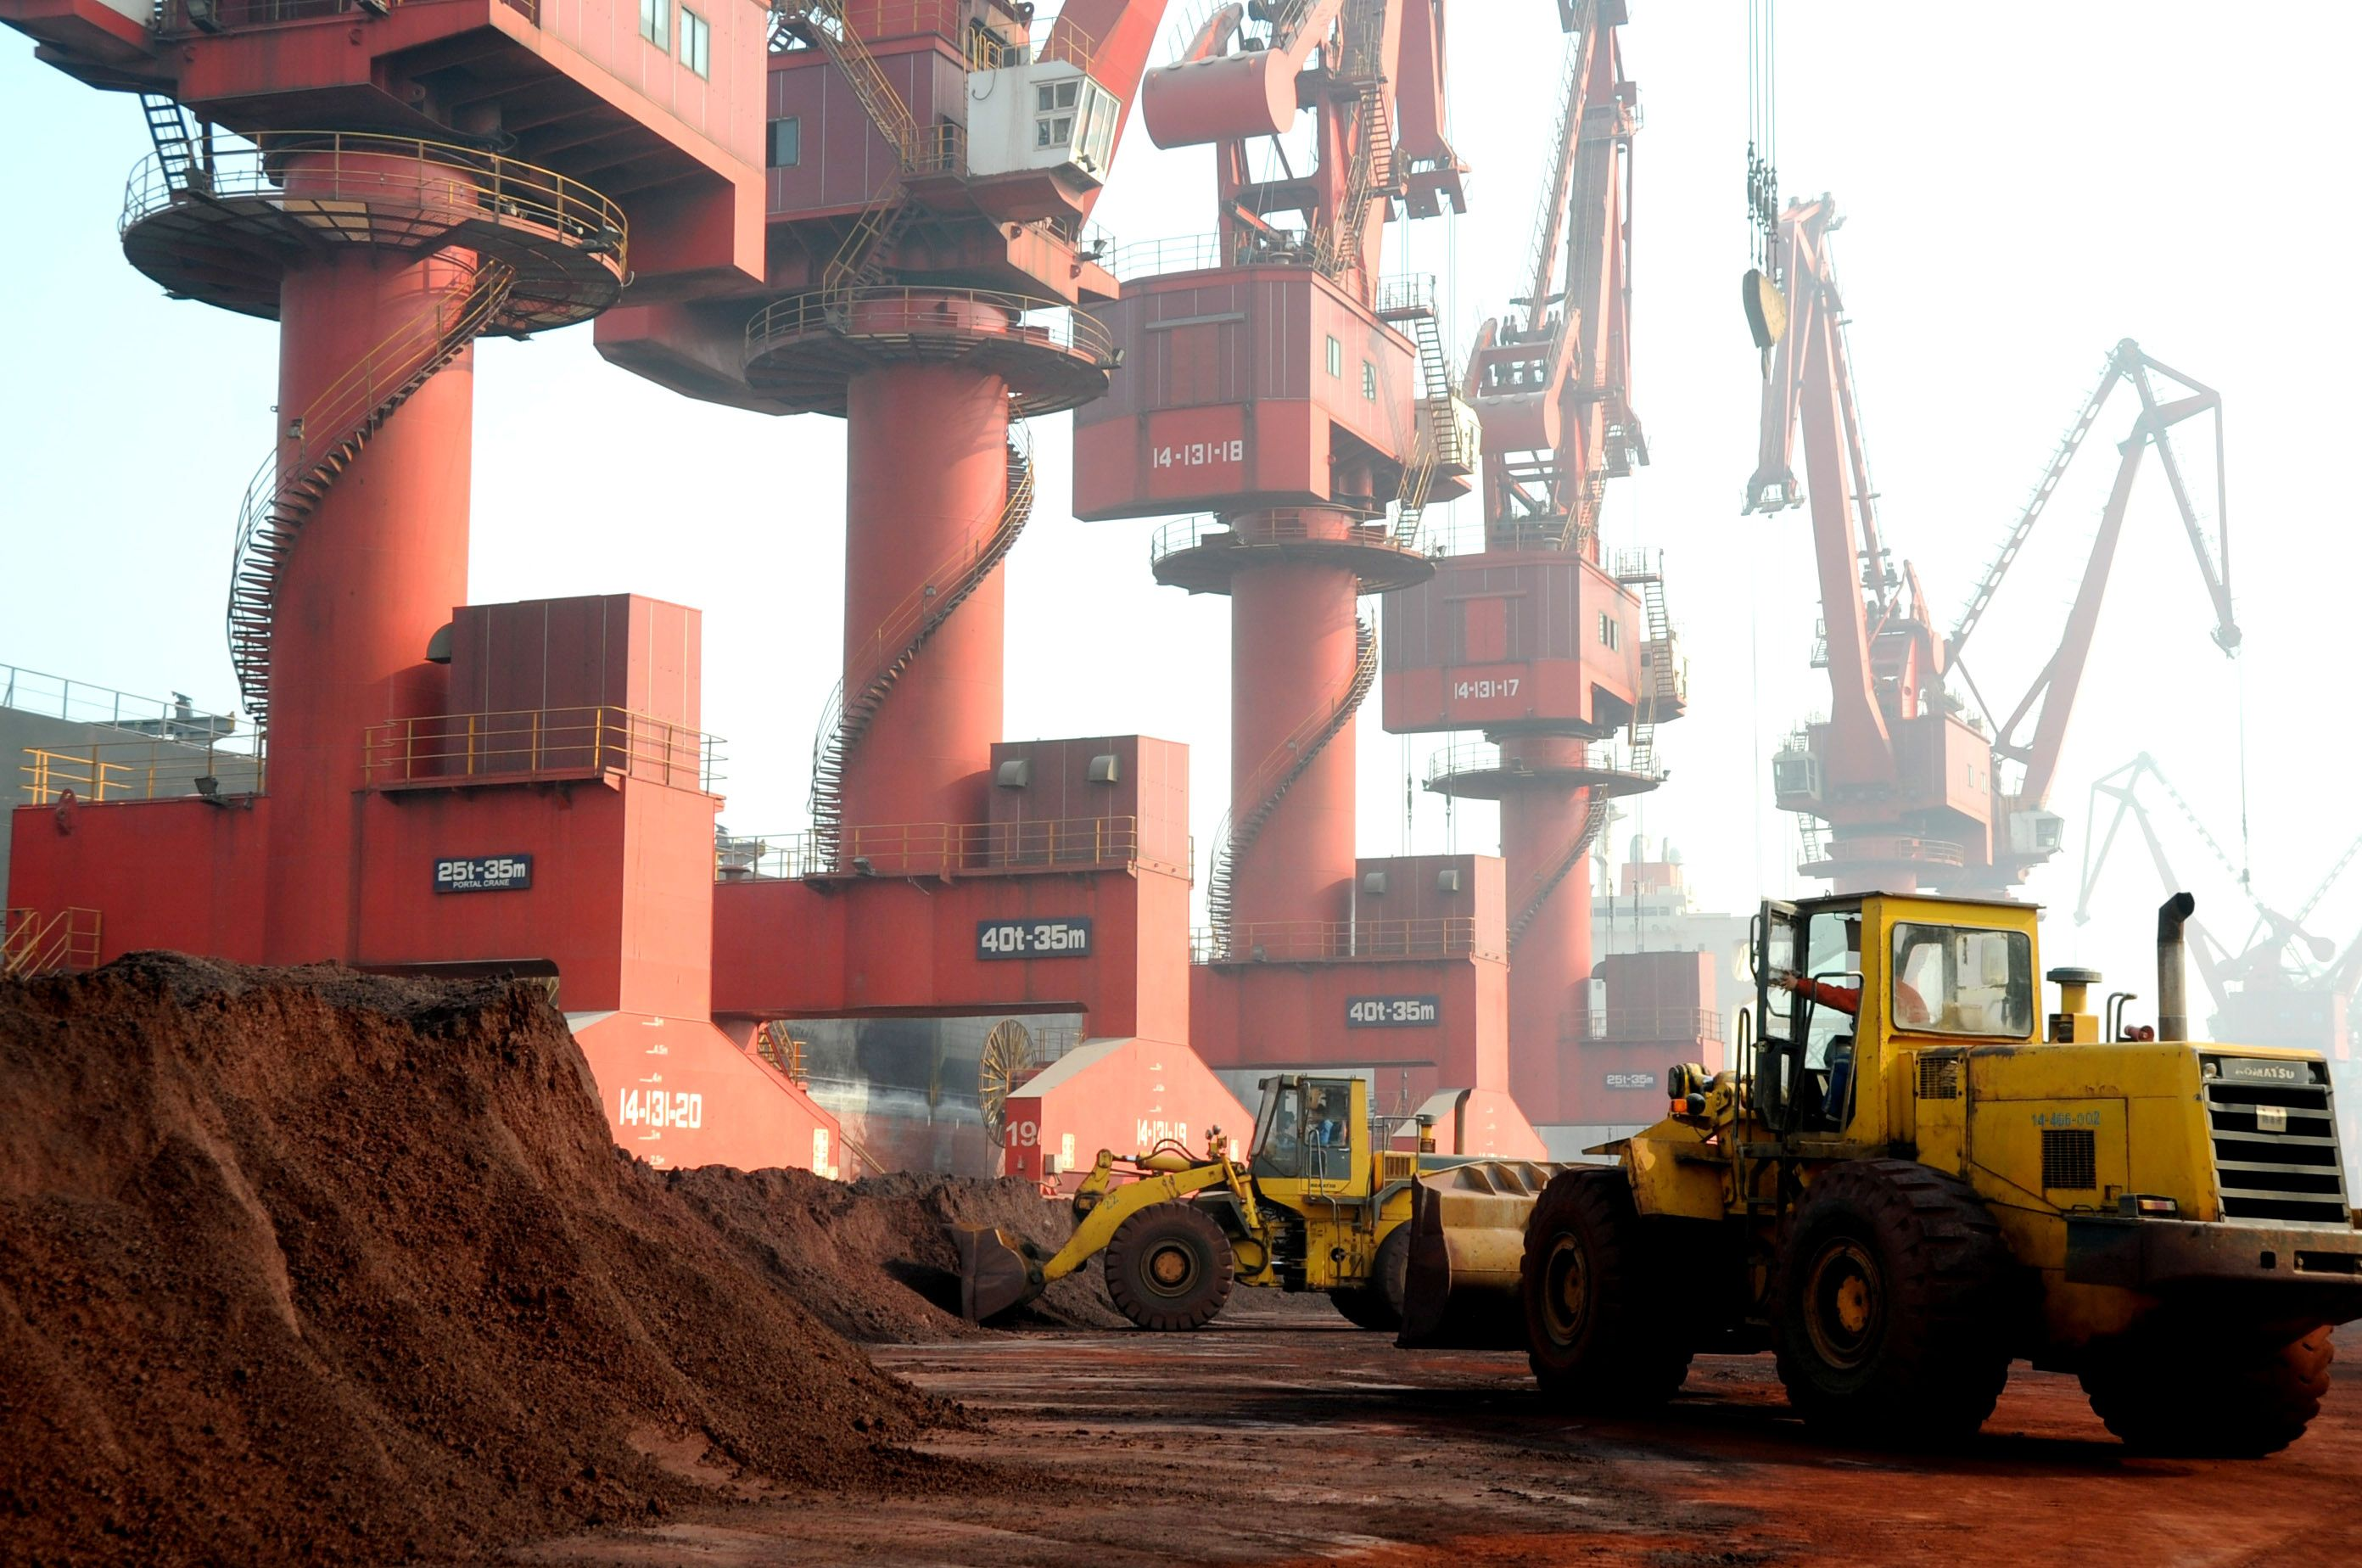 Here's why China's trade war threat to restrict rare earth minerals is so serious